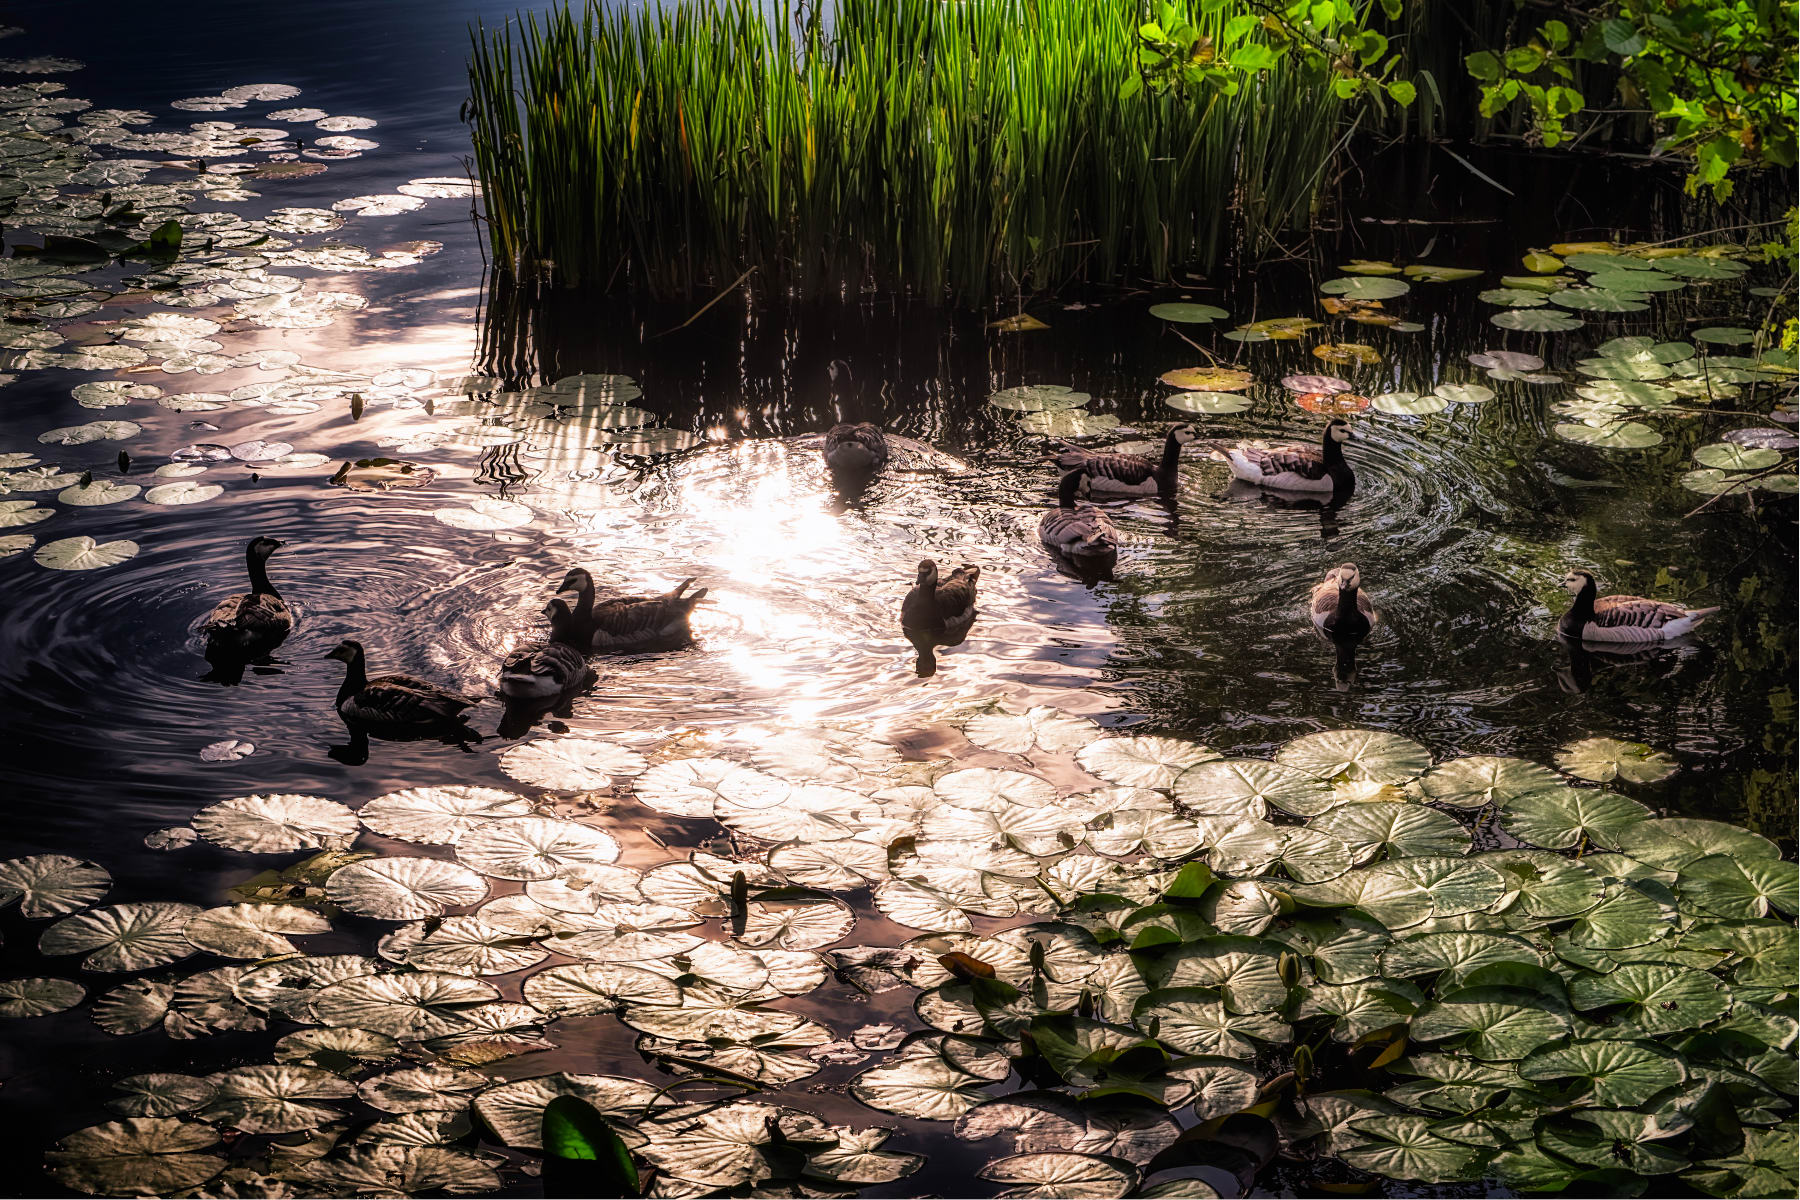 sunlight reflection in pond with waterlilies and geese